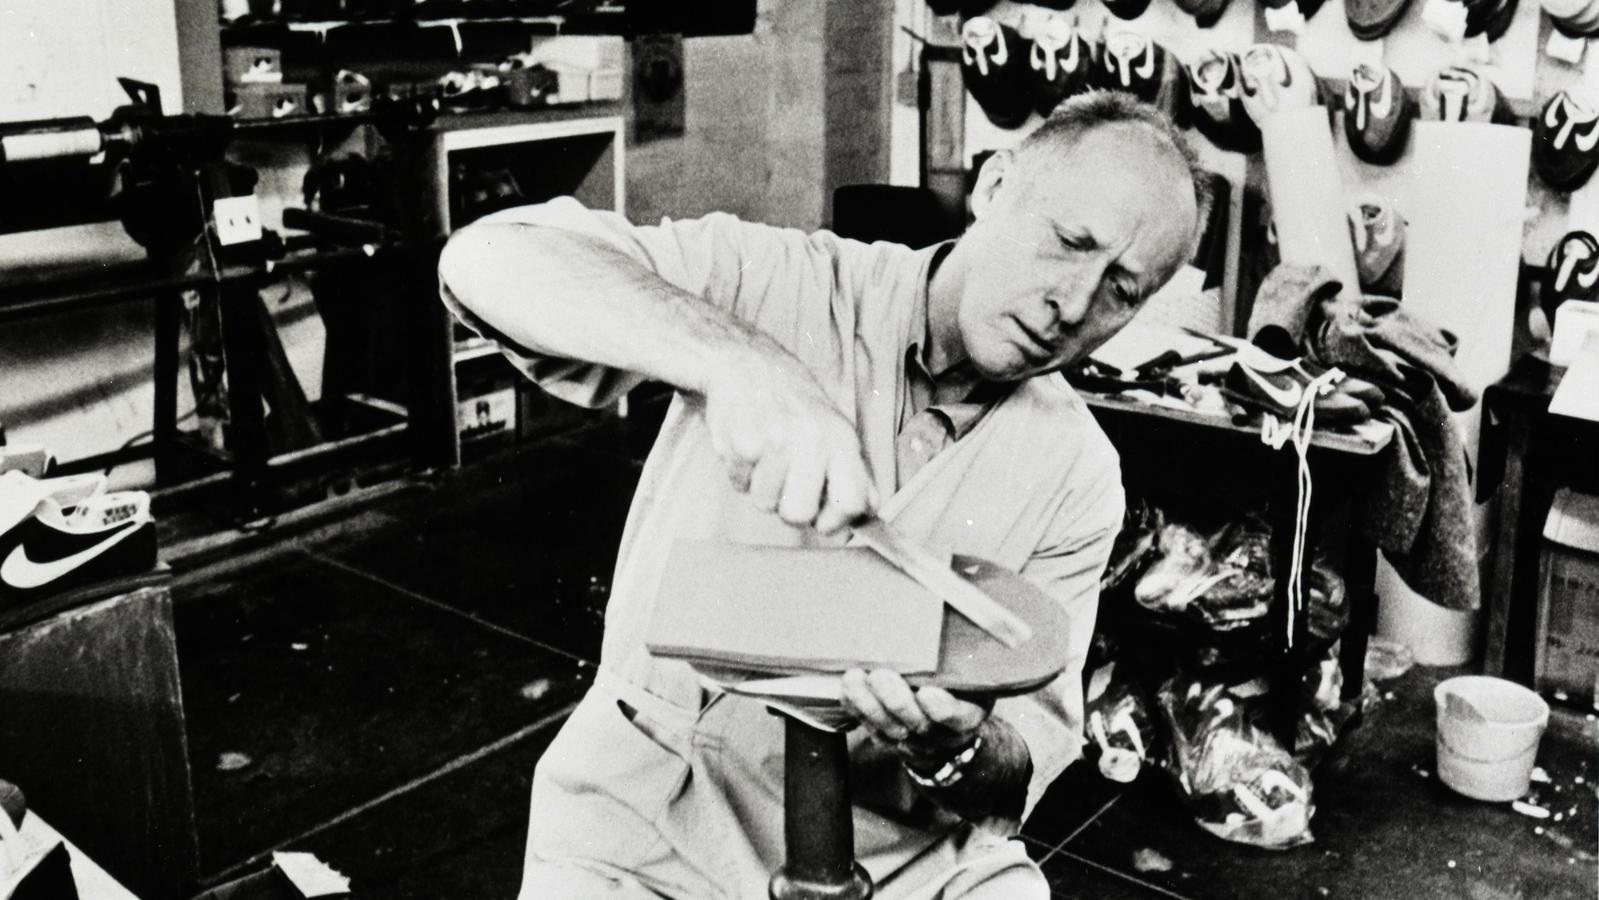 Bill Bowerman - Co-Founder, Nike